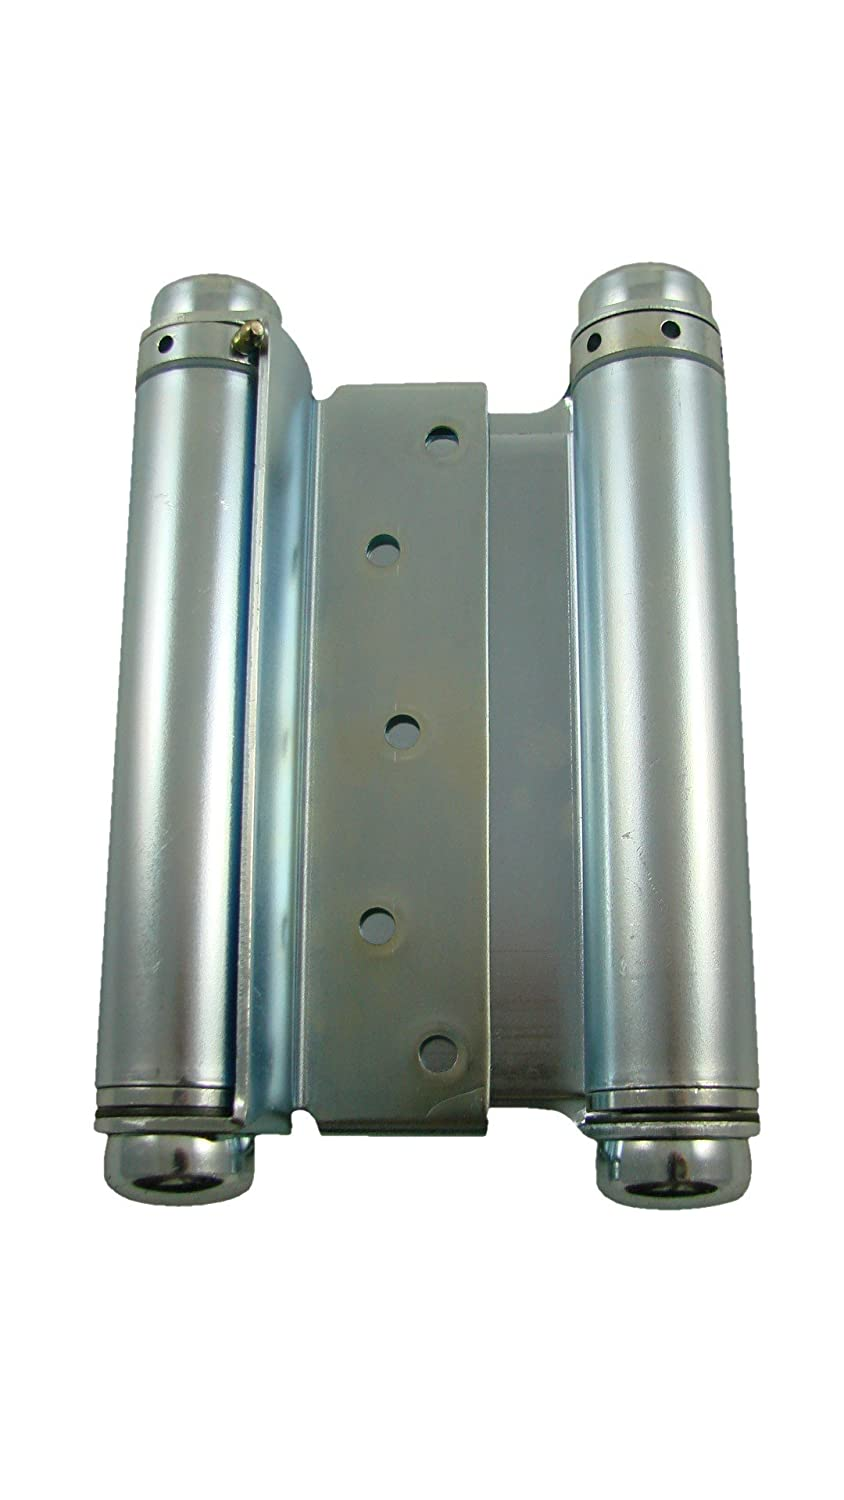 Hinge Outlet 6 Inch Double Action Hinge Highly Rust Resistant Zinc